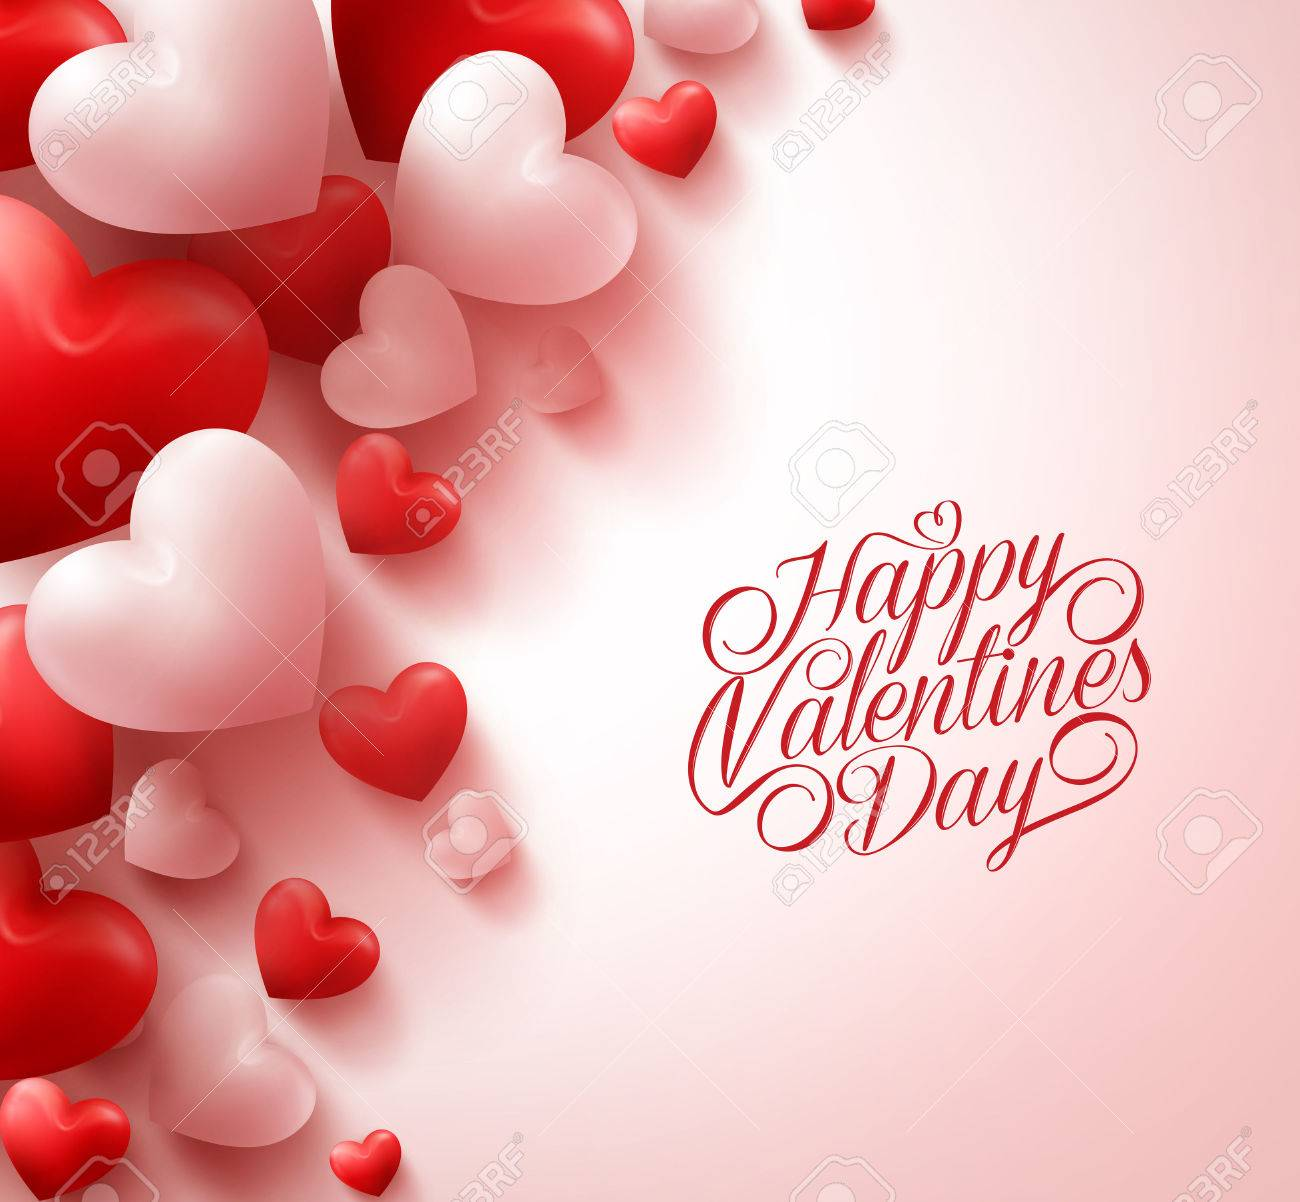 3d Realistic Red Hearts And Sweet Happy Valentines Day Title